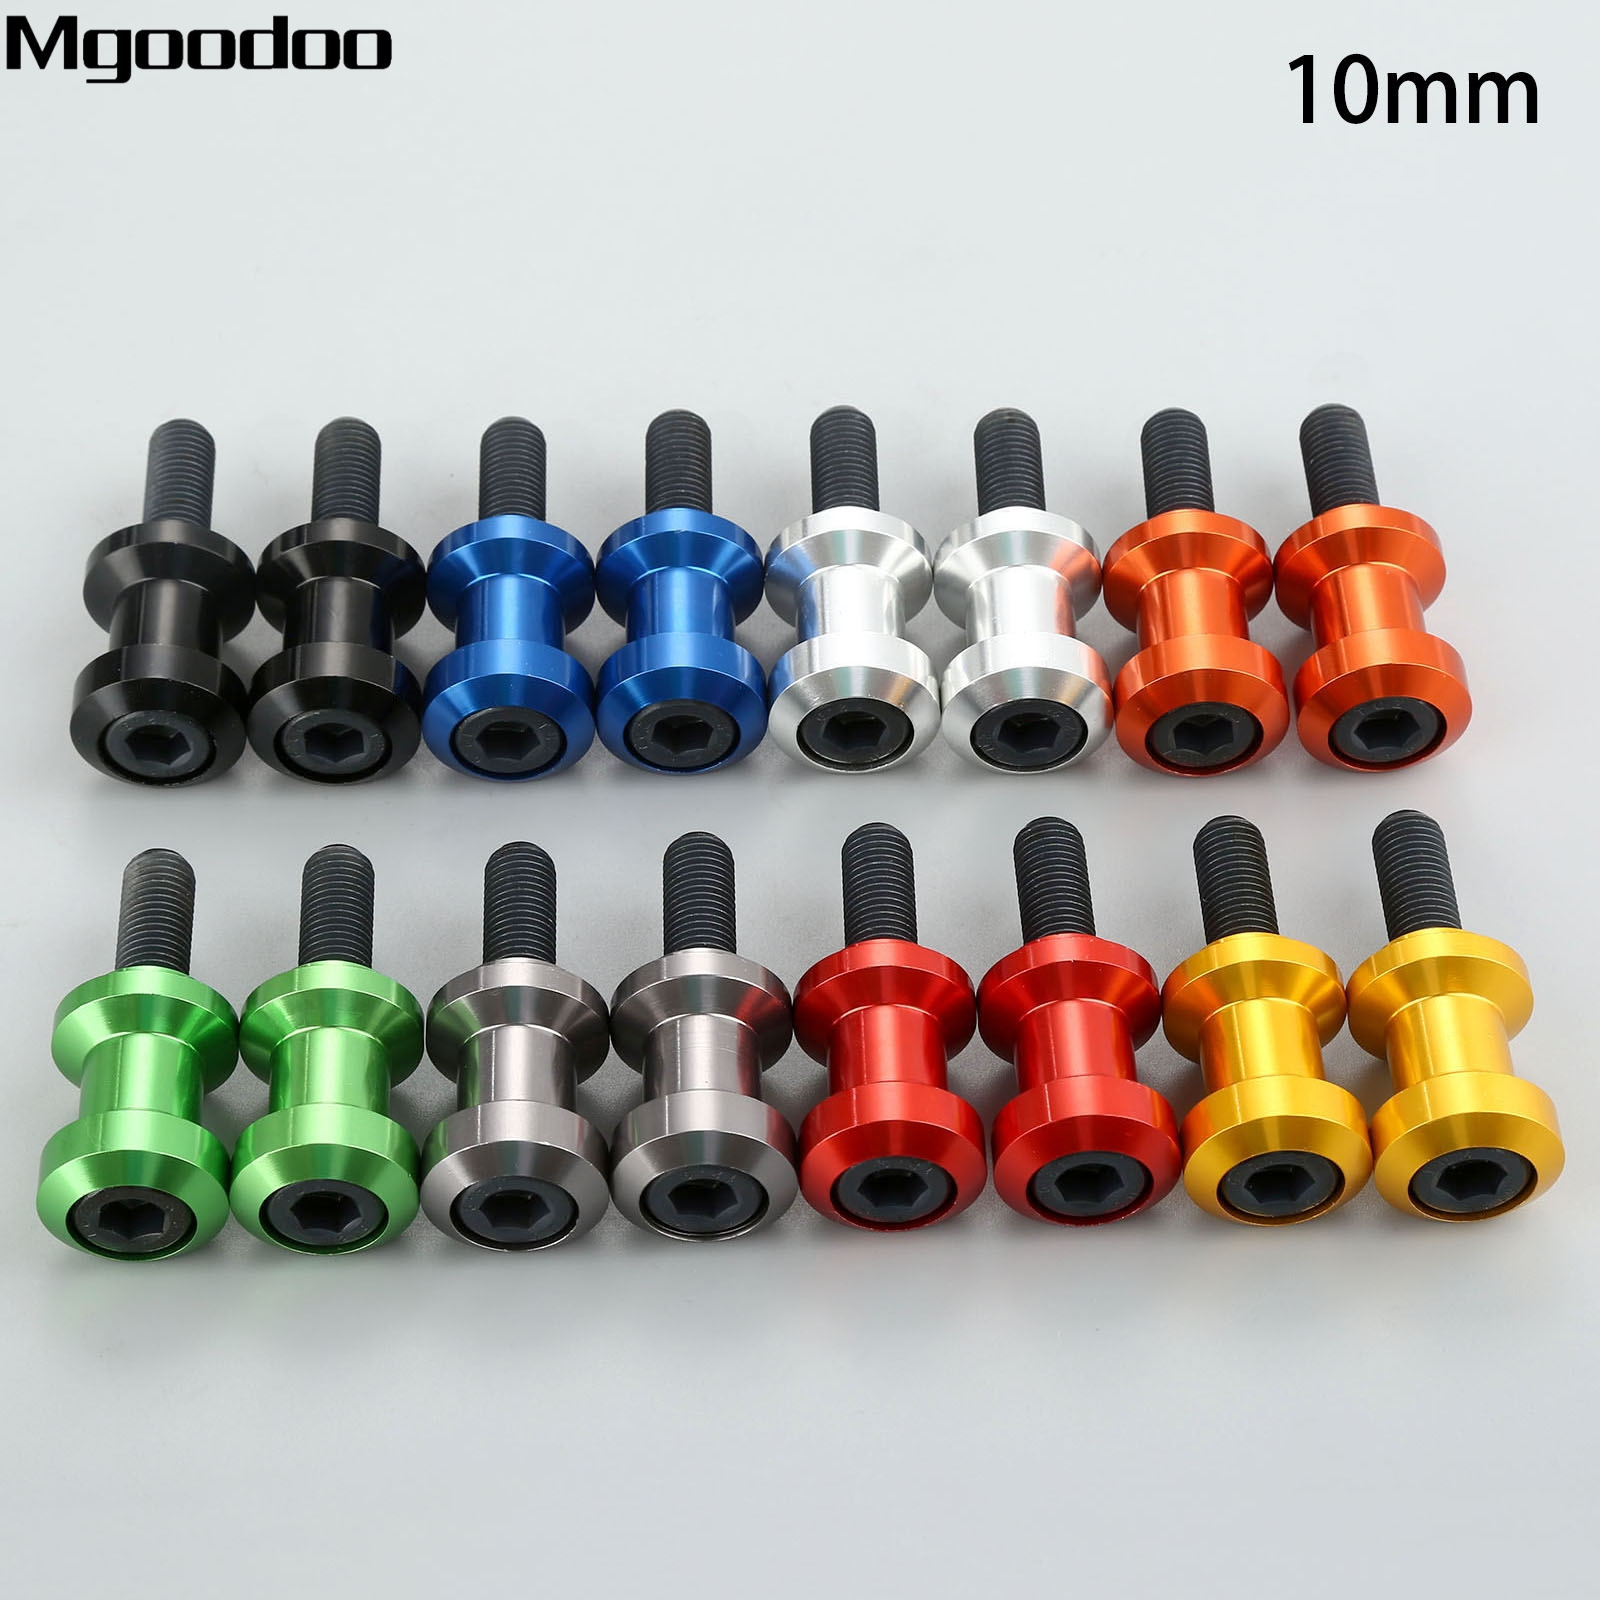 Mgoodoo CNC Aluminium 10mm Motorcycle Swingarm Spools Sliders For Yamaha YZF750/1000 FZR400/600/1000 KTM 690 990 Duke 1190 RC8 autumn warm plush winter shoes men zipper 100% genuine leather boots men thick bottom waterproof black high top ankle men boots